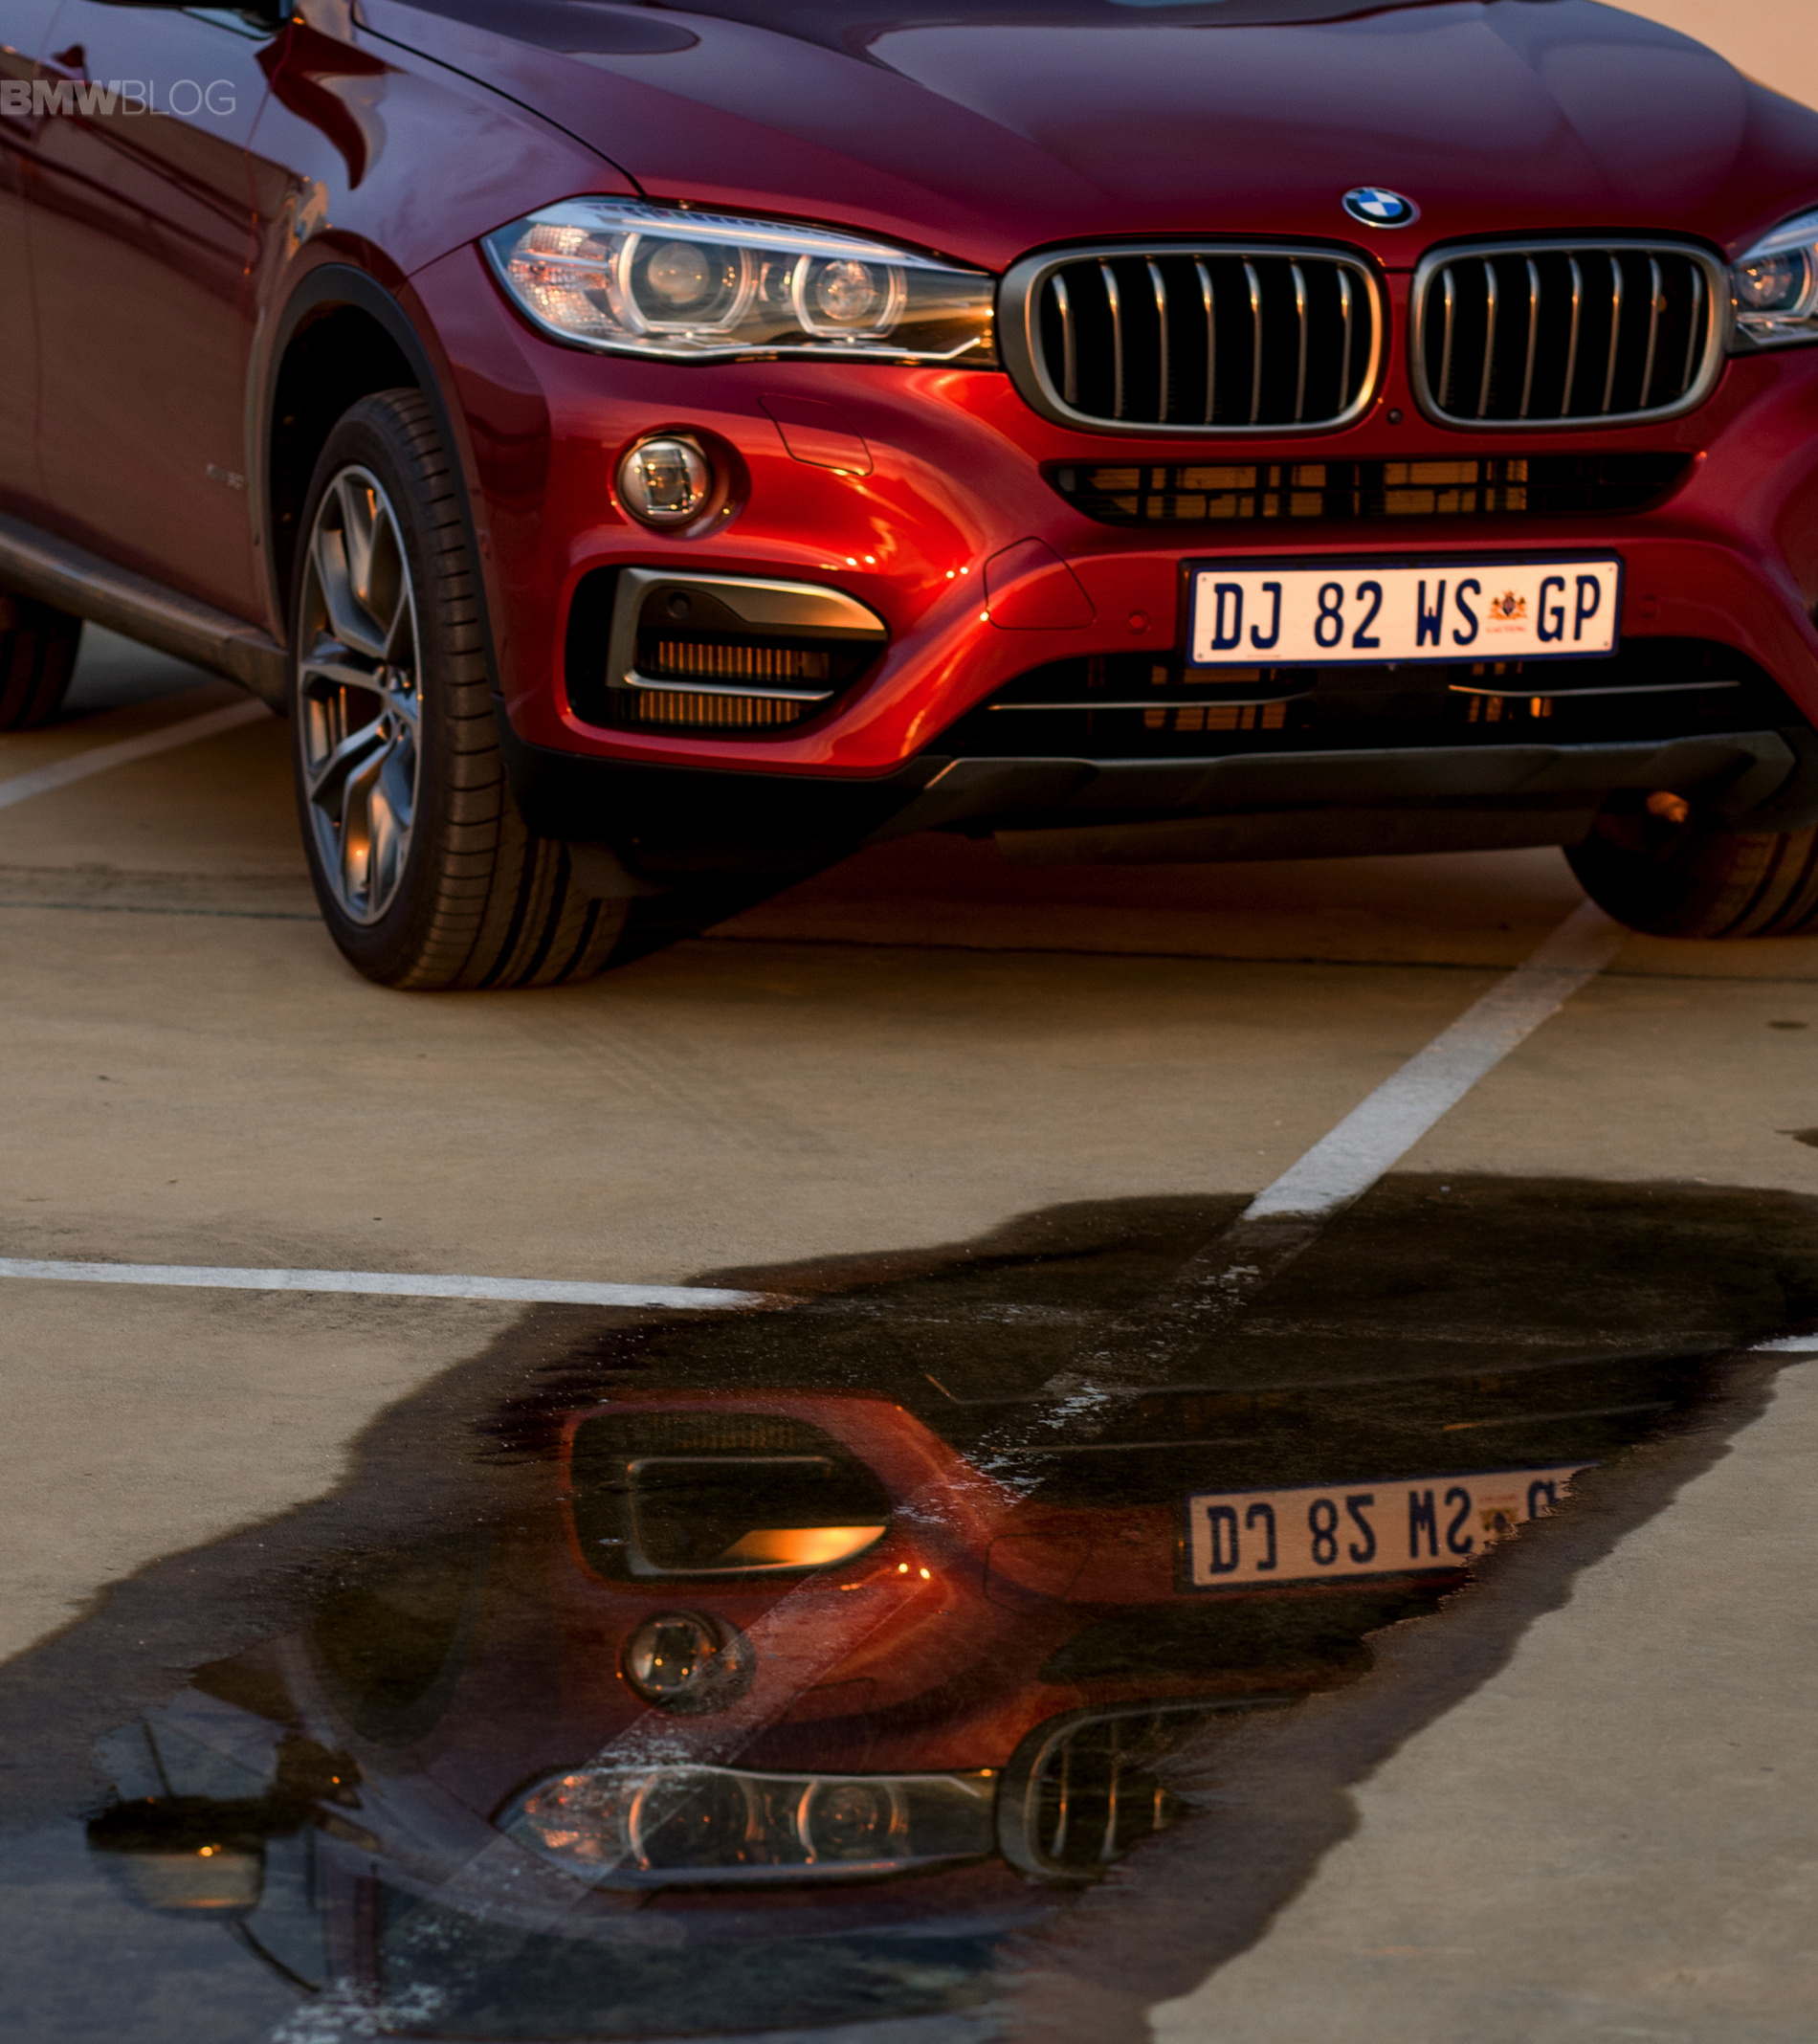 Bmw X6 Price 2015: 2015 BMW X6 In South Africa